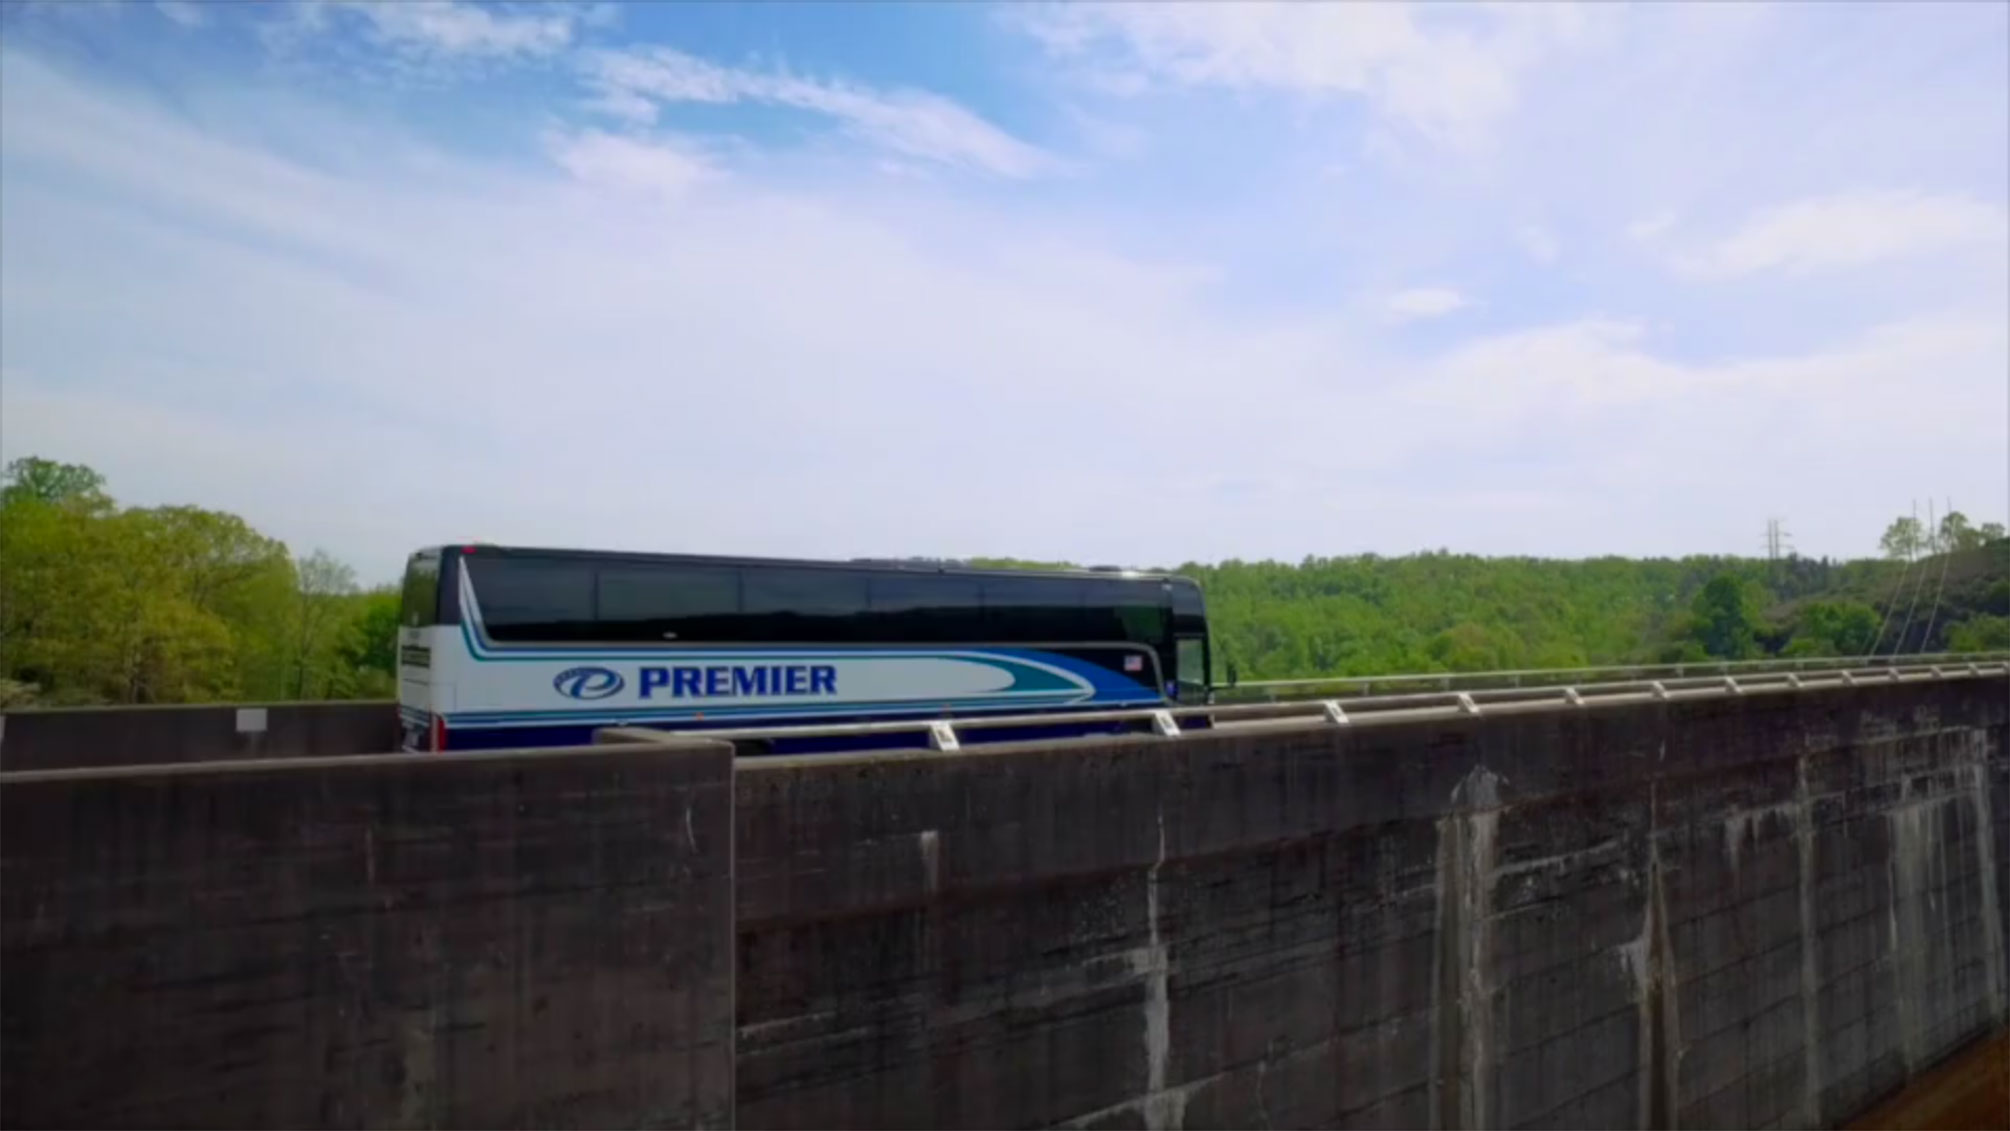 Premier Transportation Bus Over Bridge